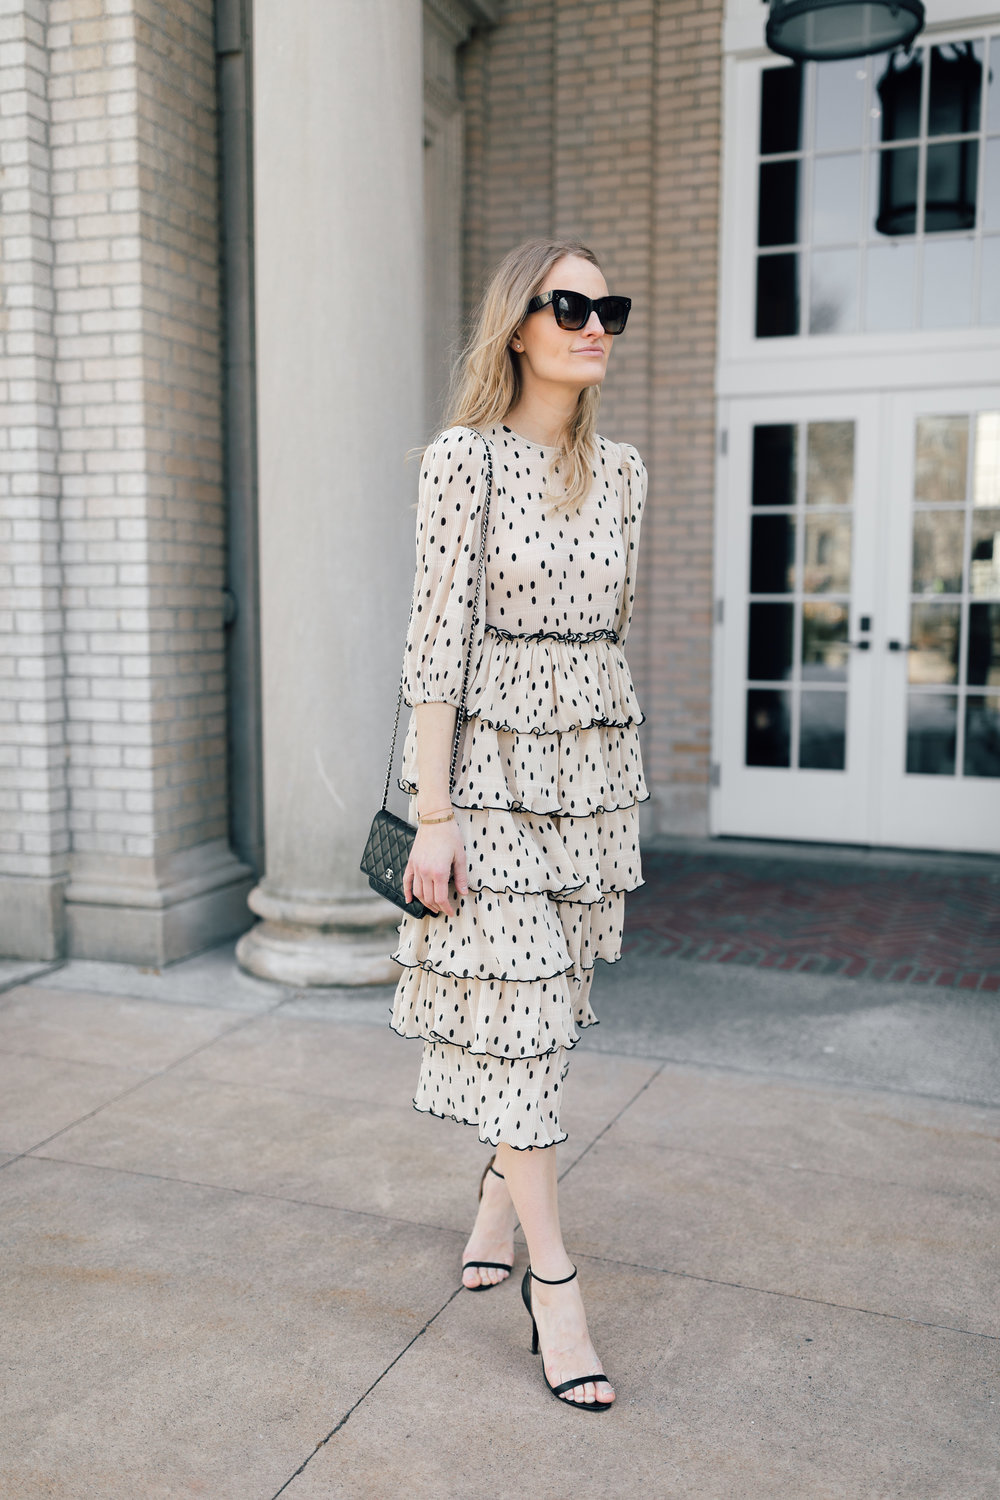 Style a Ganni polka dot ruffle dress // Chanel WOC black bag // Celine Catherine Sunglasses // Dress styled with leather jacket // Stephanie Trotta // The Girl Guide